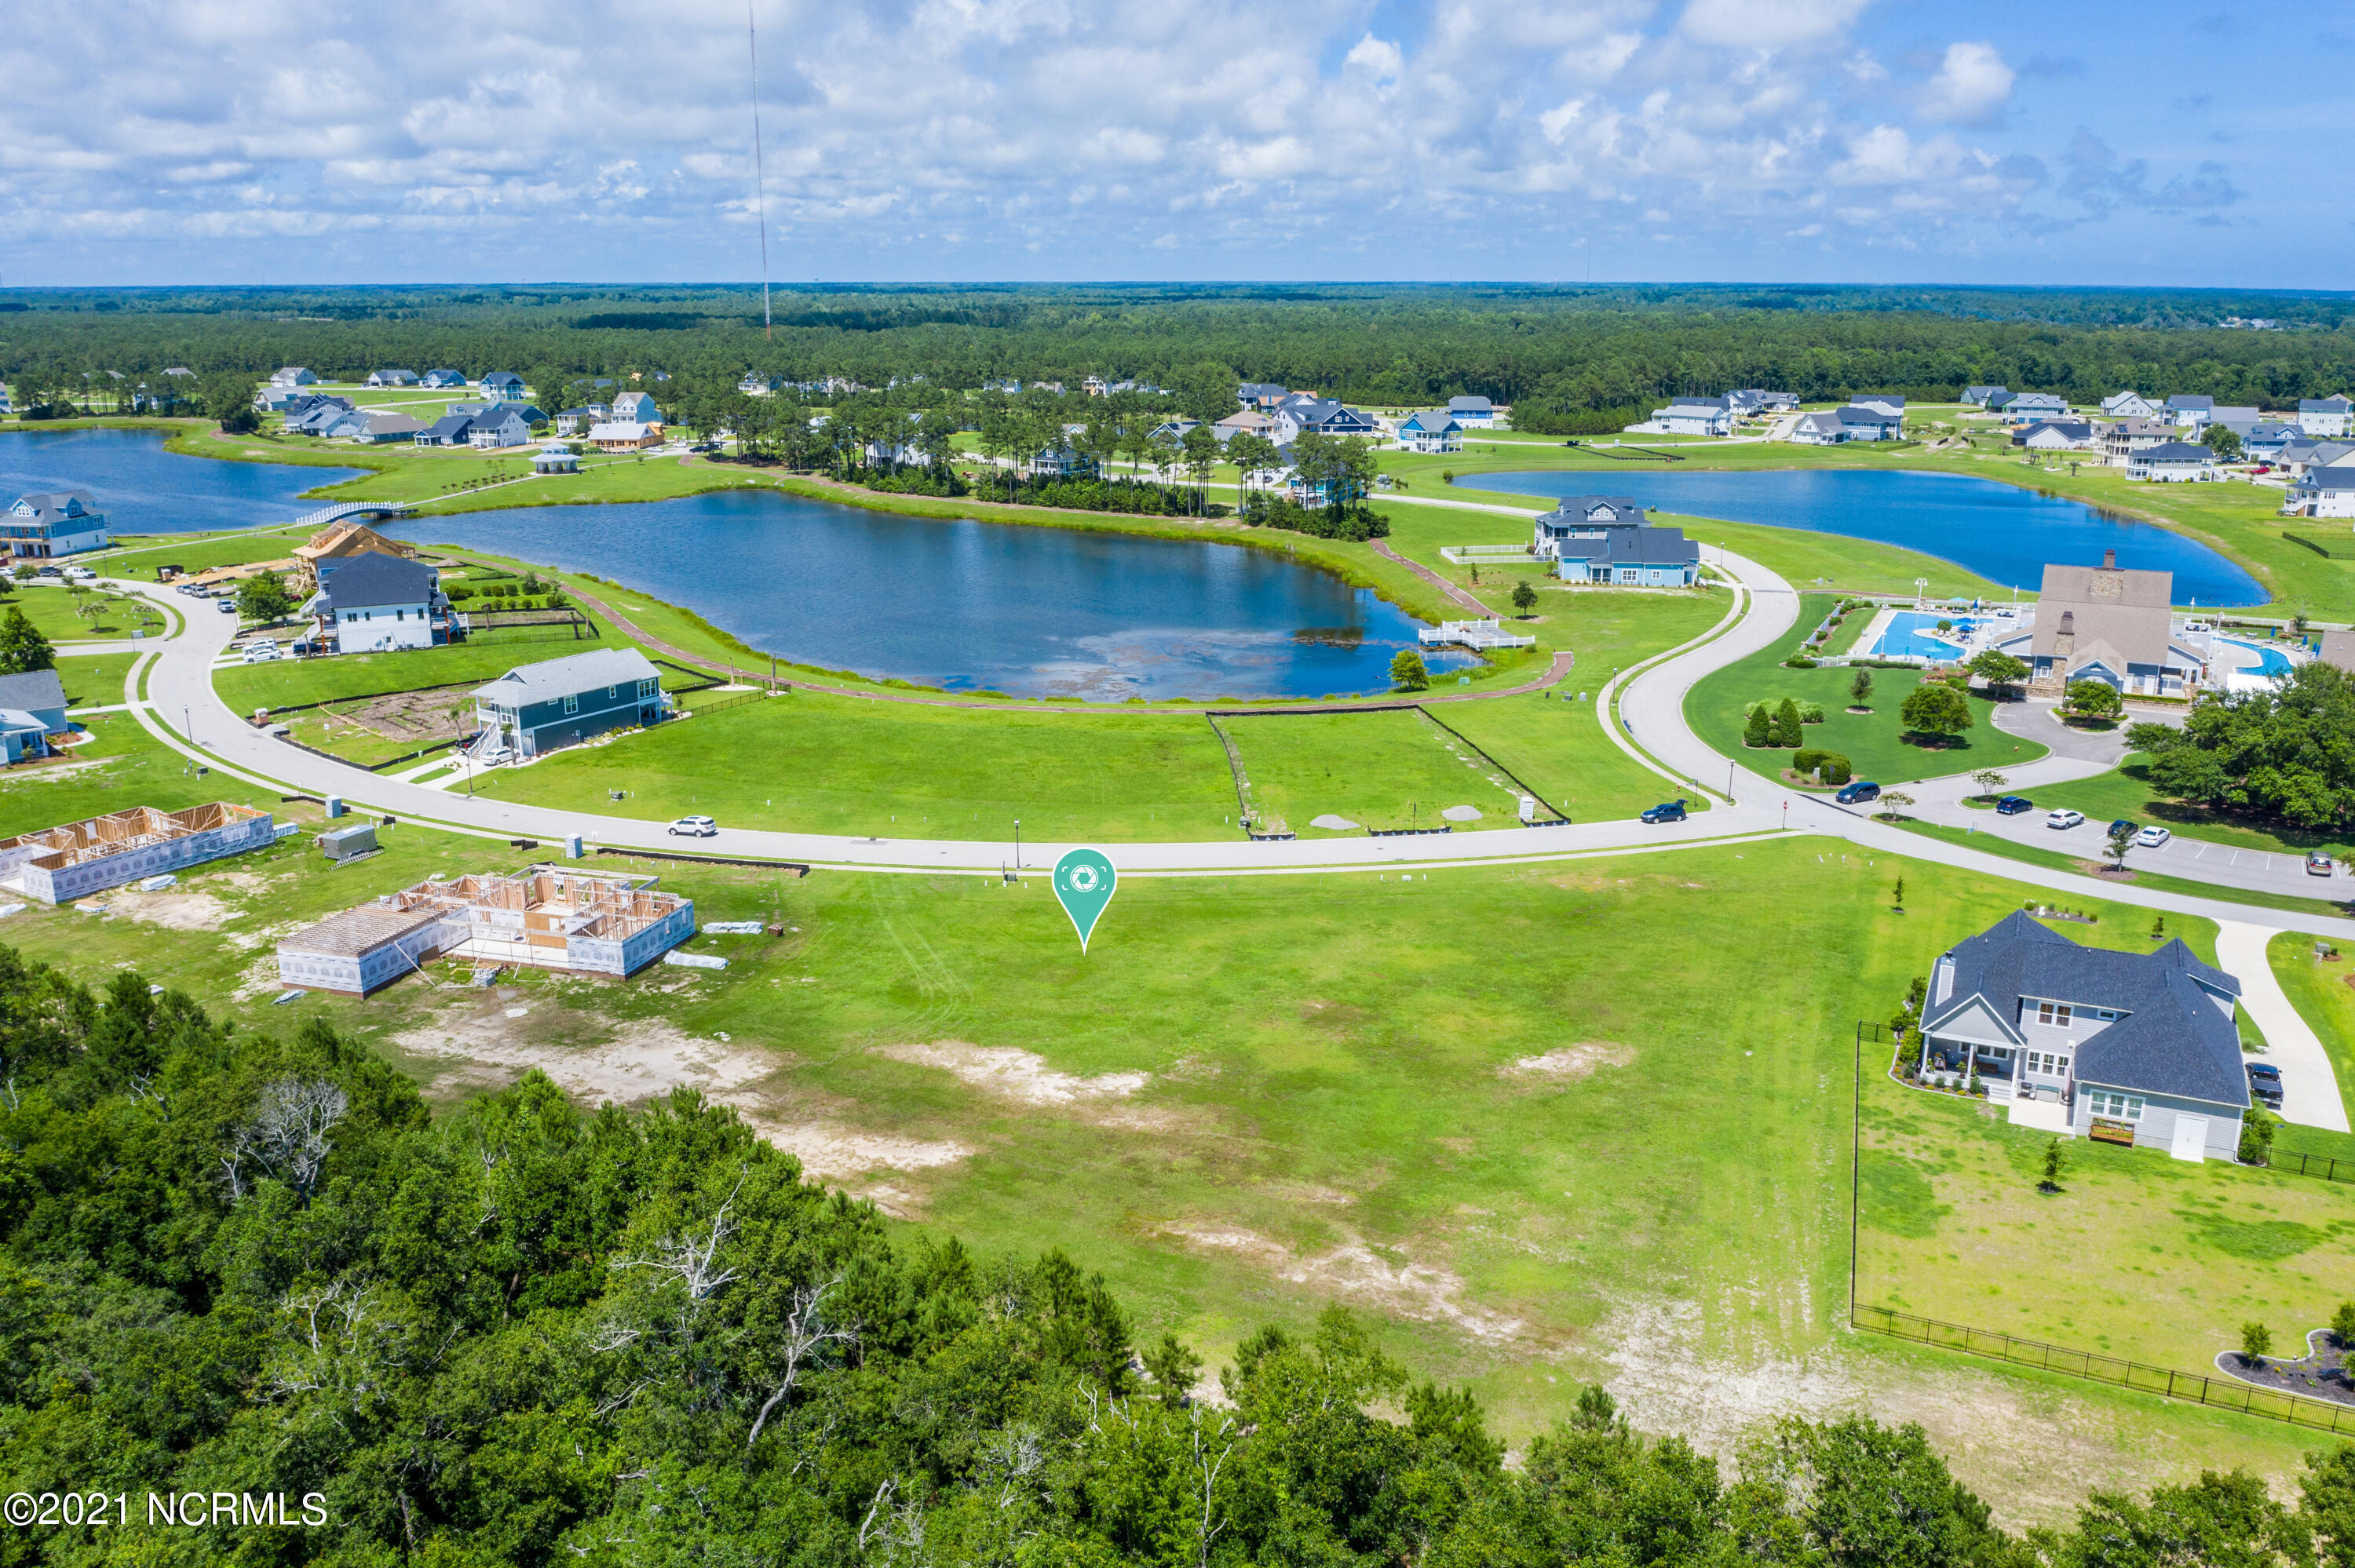 Gorgeous, ready to build lot located in the Premier community of Summerhouse on Everett Bay!  This sprawling lot boasts beautiful views of Spicer Lake with a tree lined rear yard for added privacy, and is conveniently located near the clubhouse and community pool. Summerhouse on Everett Bay features 6 scenic lakes and community amenities include two gated entries into the community, Resort style community pool with lazy river, two tennis courts, breathtaking clubhouse, boat launch with direct access to the intracoastal waterway including day docks and pier, on-site boat storage, picnic areas, nature park with fire pit, walking trails, open air pavilion, playground, and fully equipped fitness center with lockers & showers. Perfectly located between Wilmington and Jacksonville and just minutes from MARSOC, Camp Lejeune, Topsail Beaches, and Stone Bay. Come home to extraordinary coastal living at its finest!